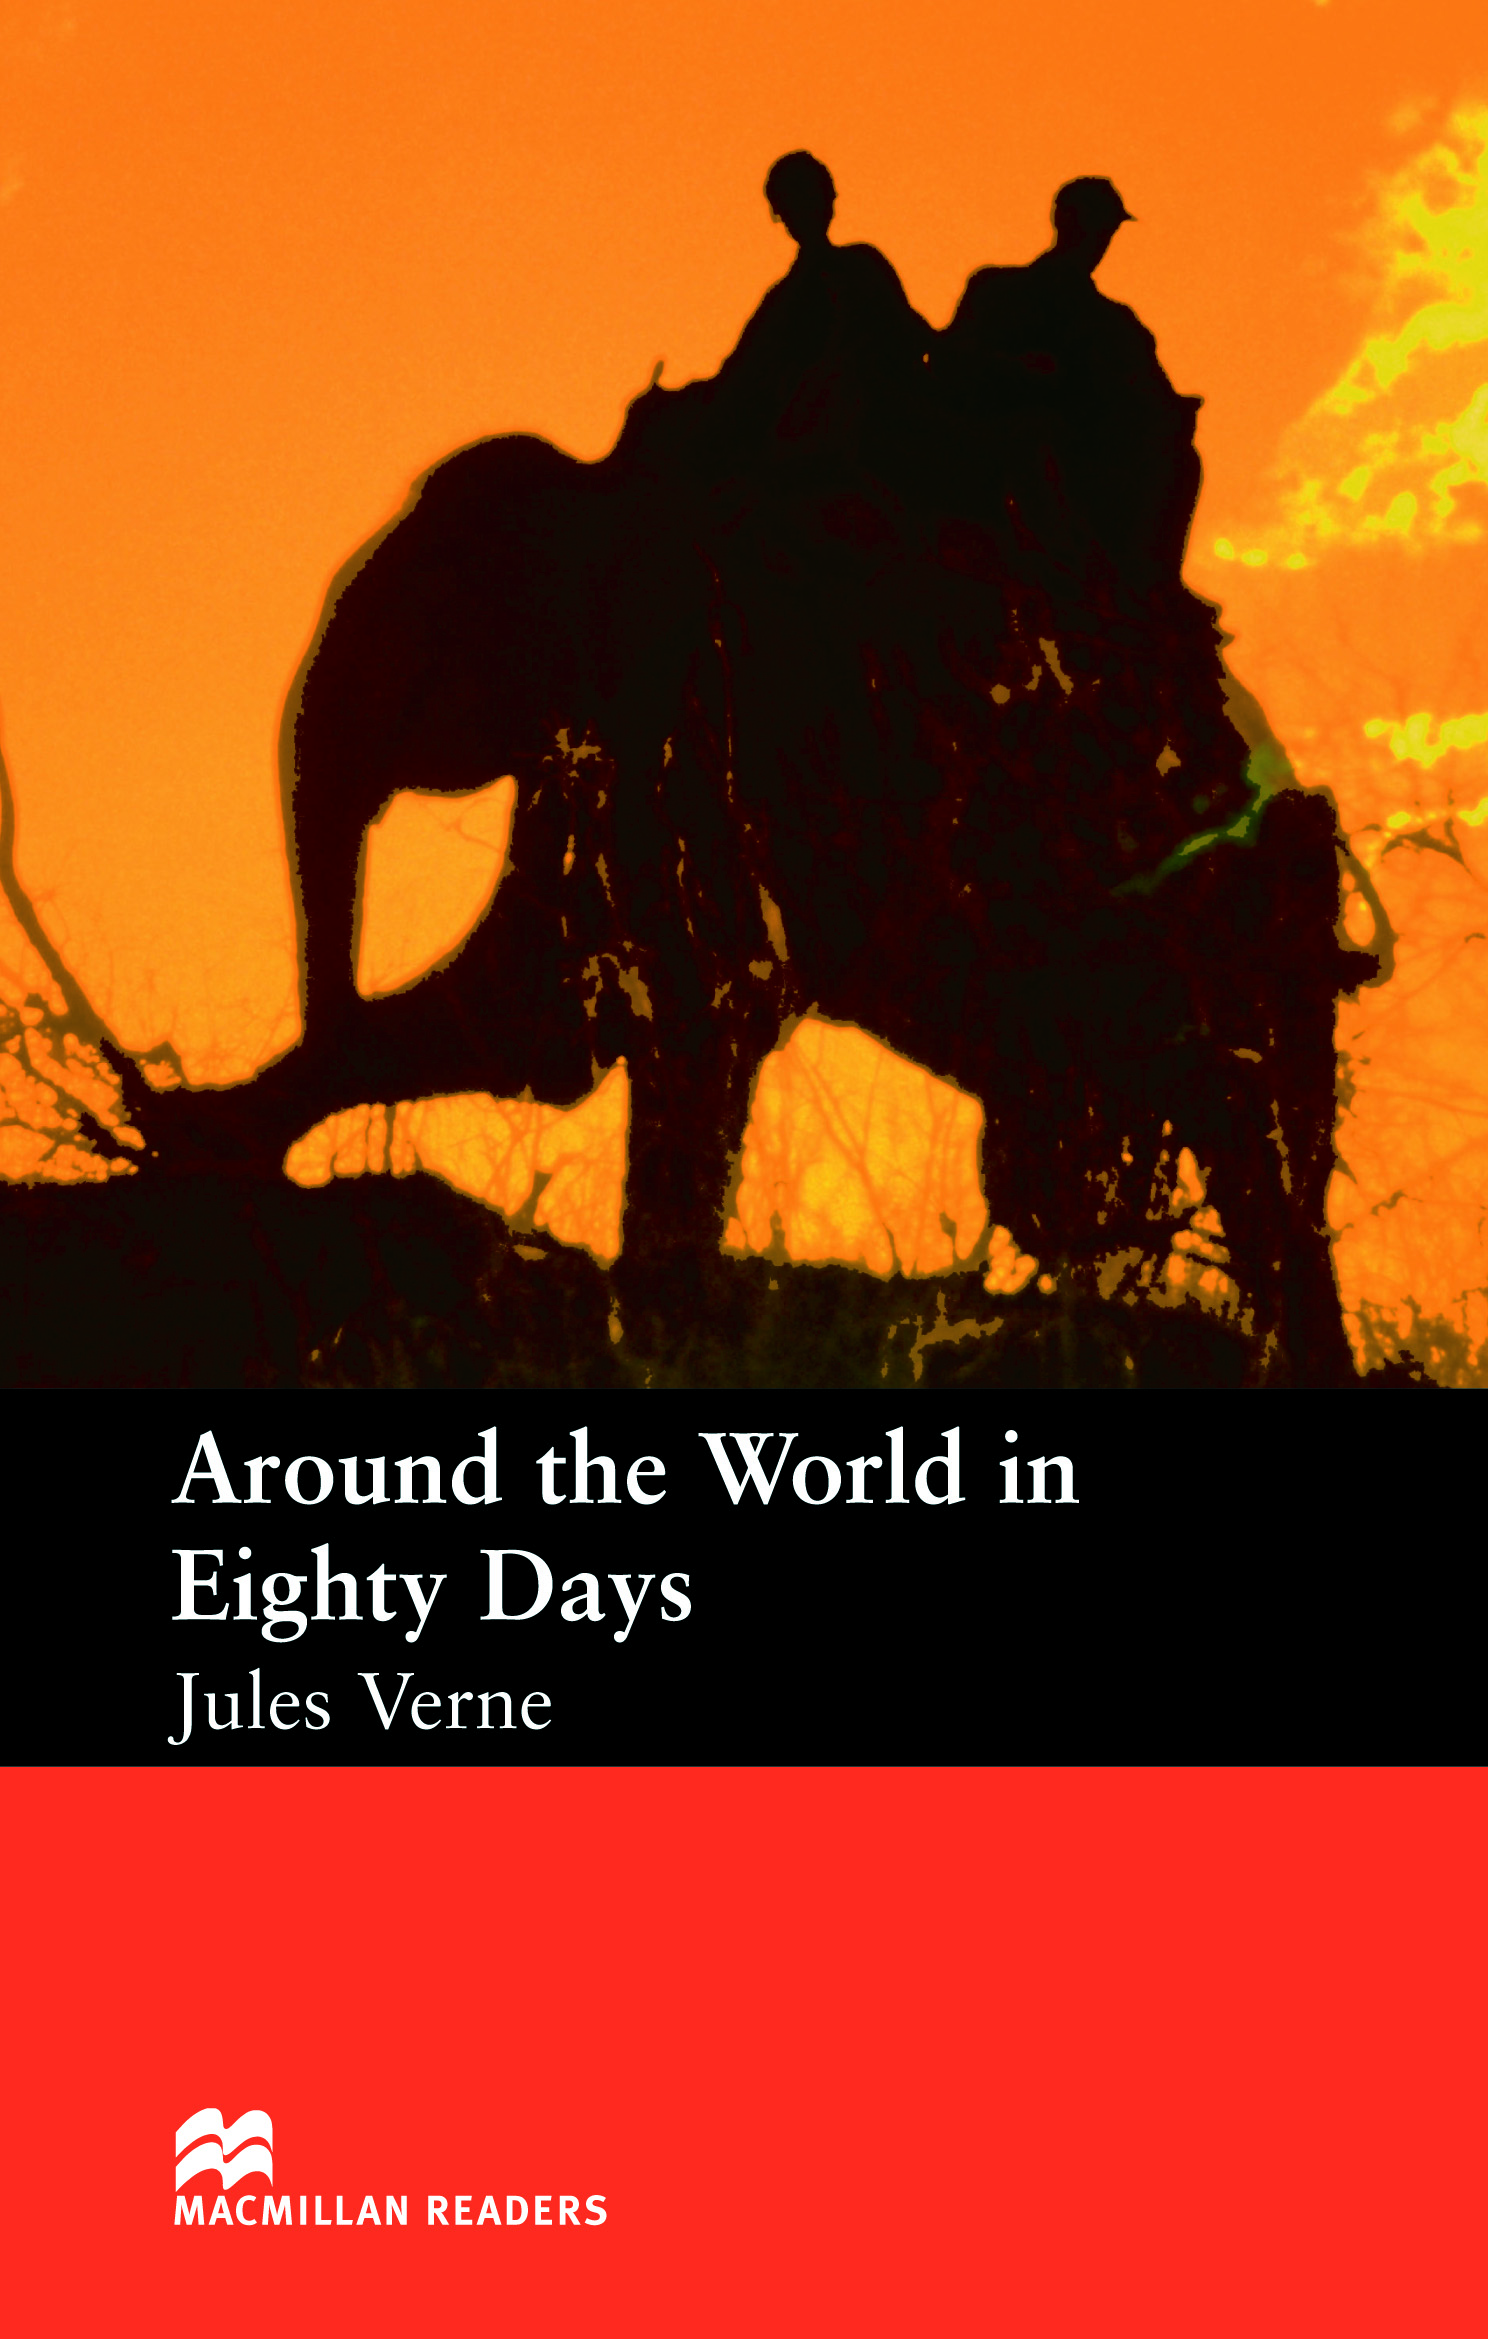 Macmillan Readers: Around the World in Eighty Days